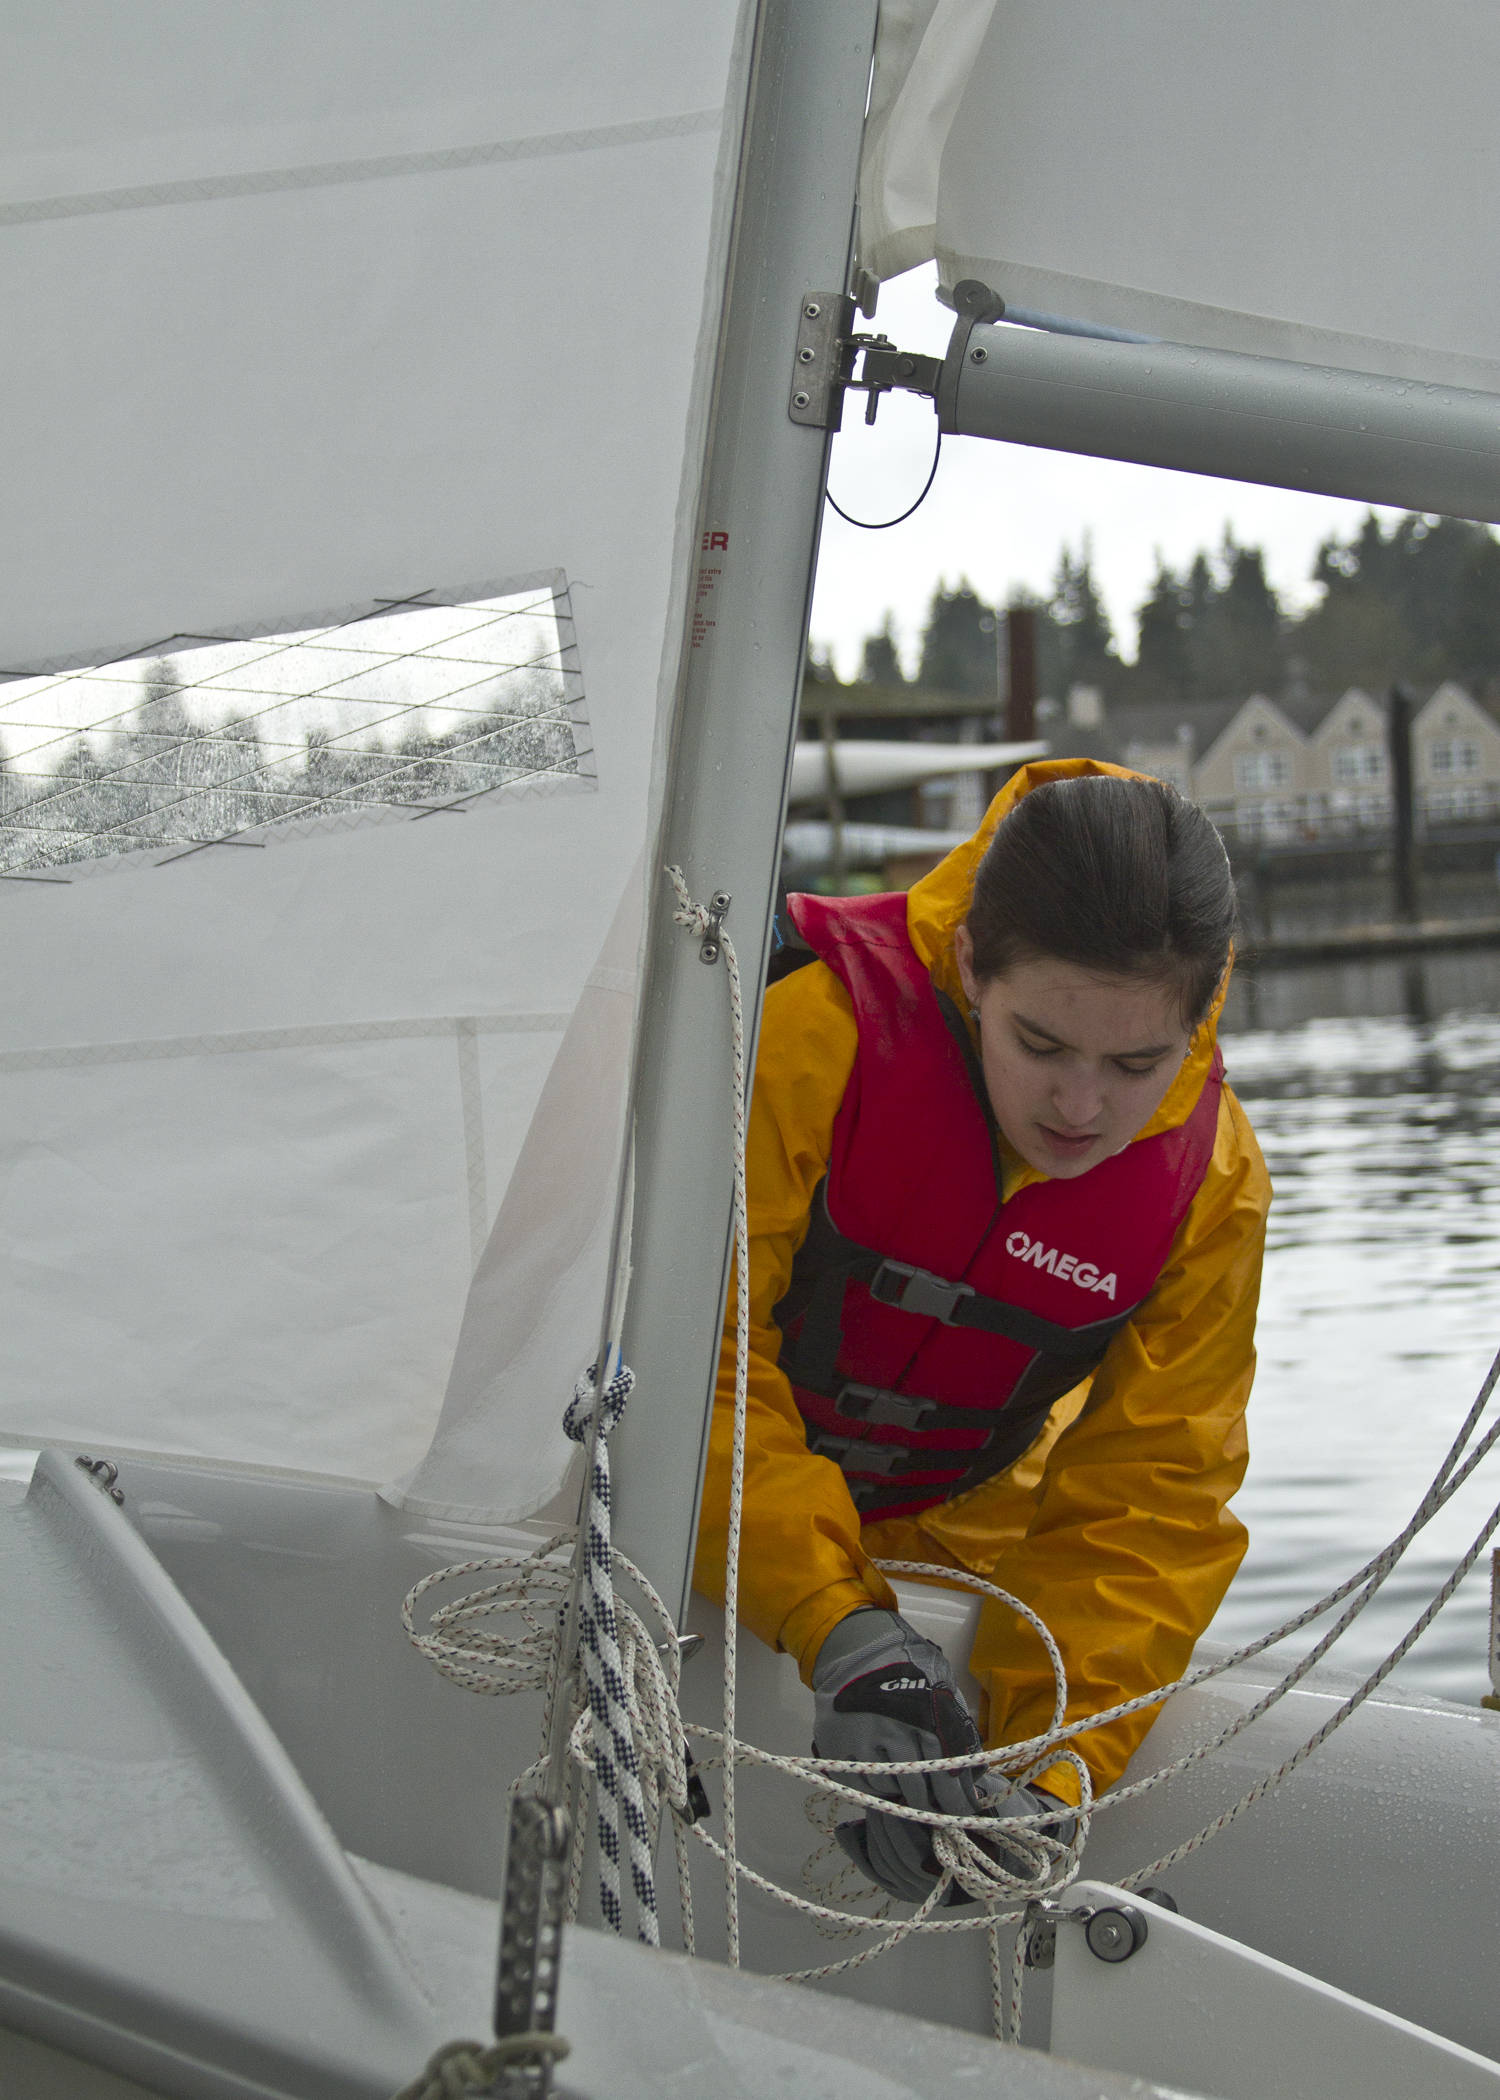 Bainbridge High School freshman sailor Diana Curtis prepares her boat to be put into the water during the team's second practice session of the 2013 season.